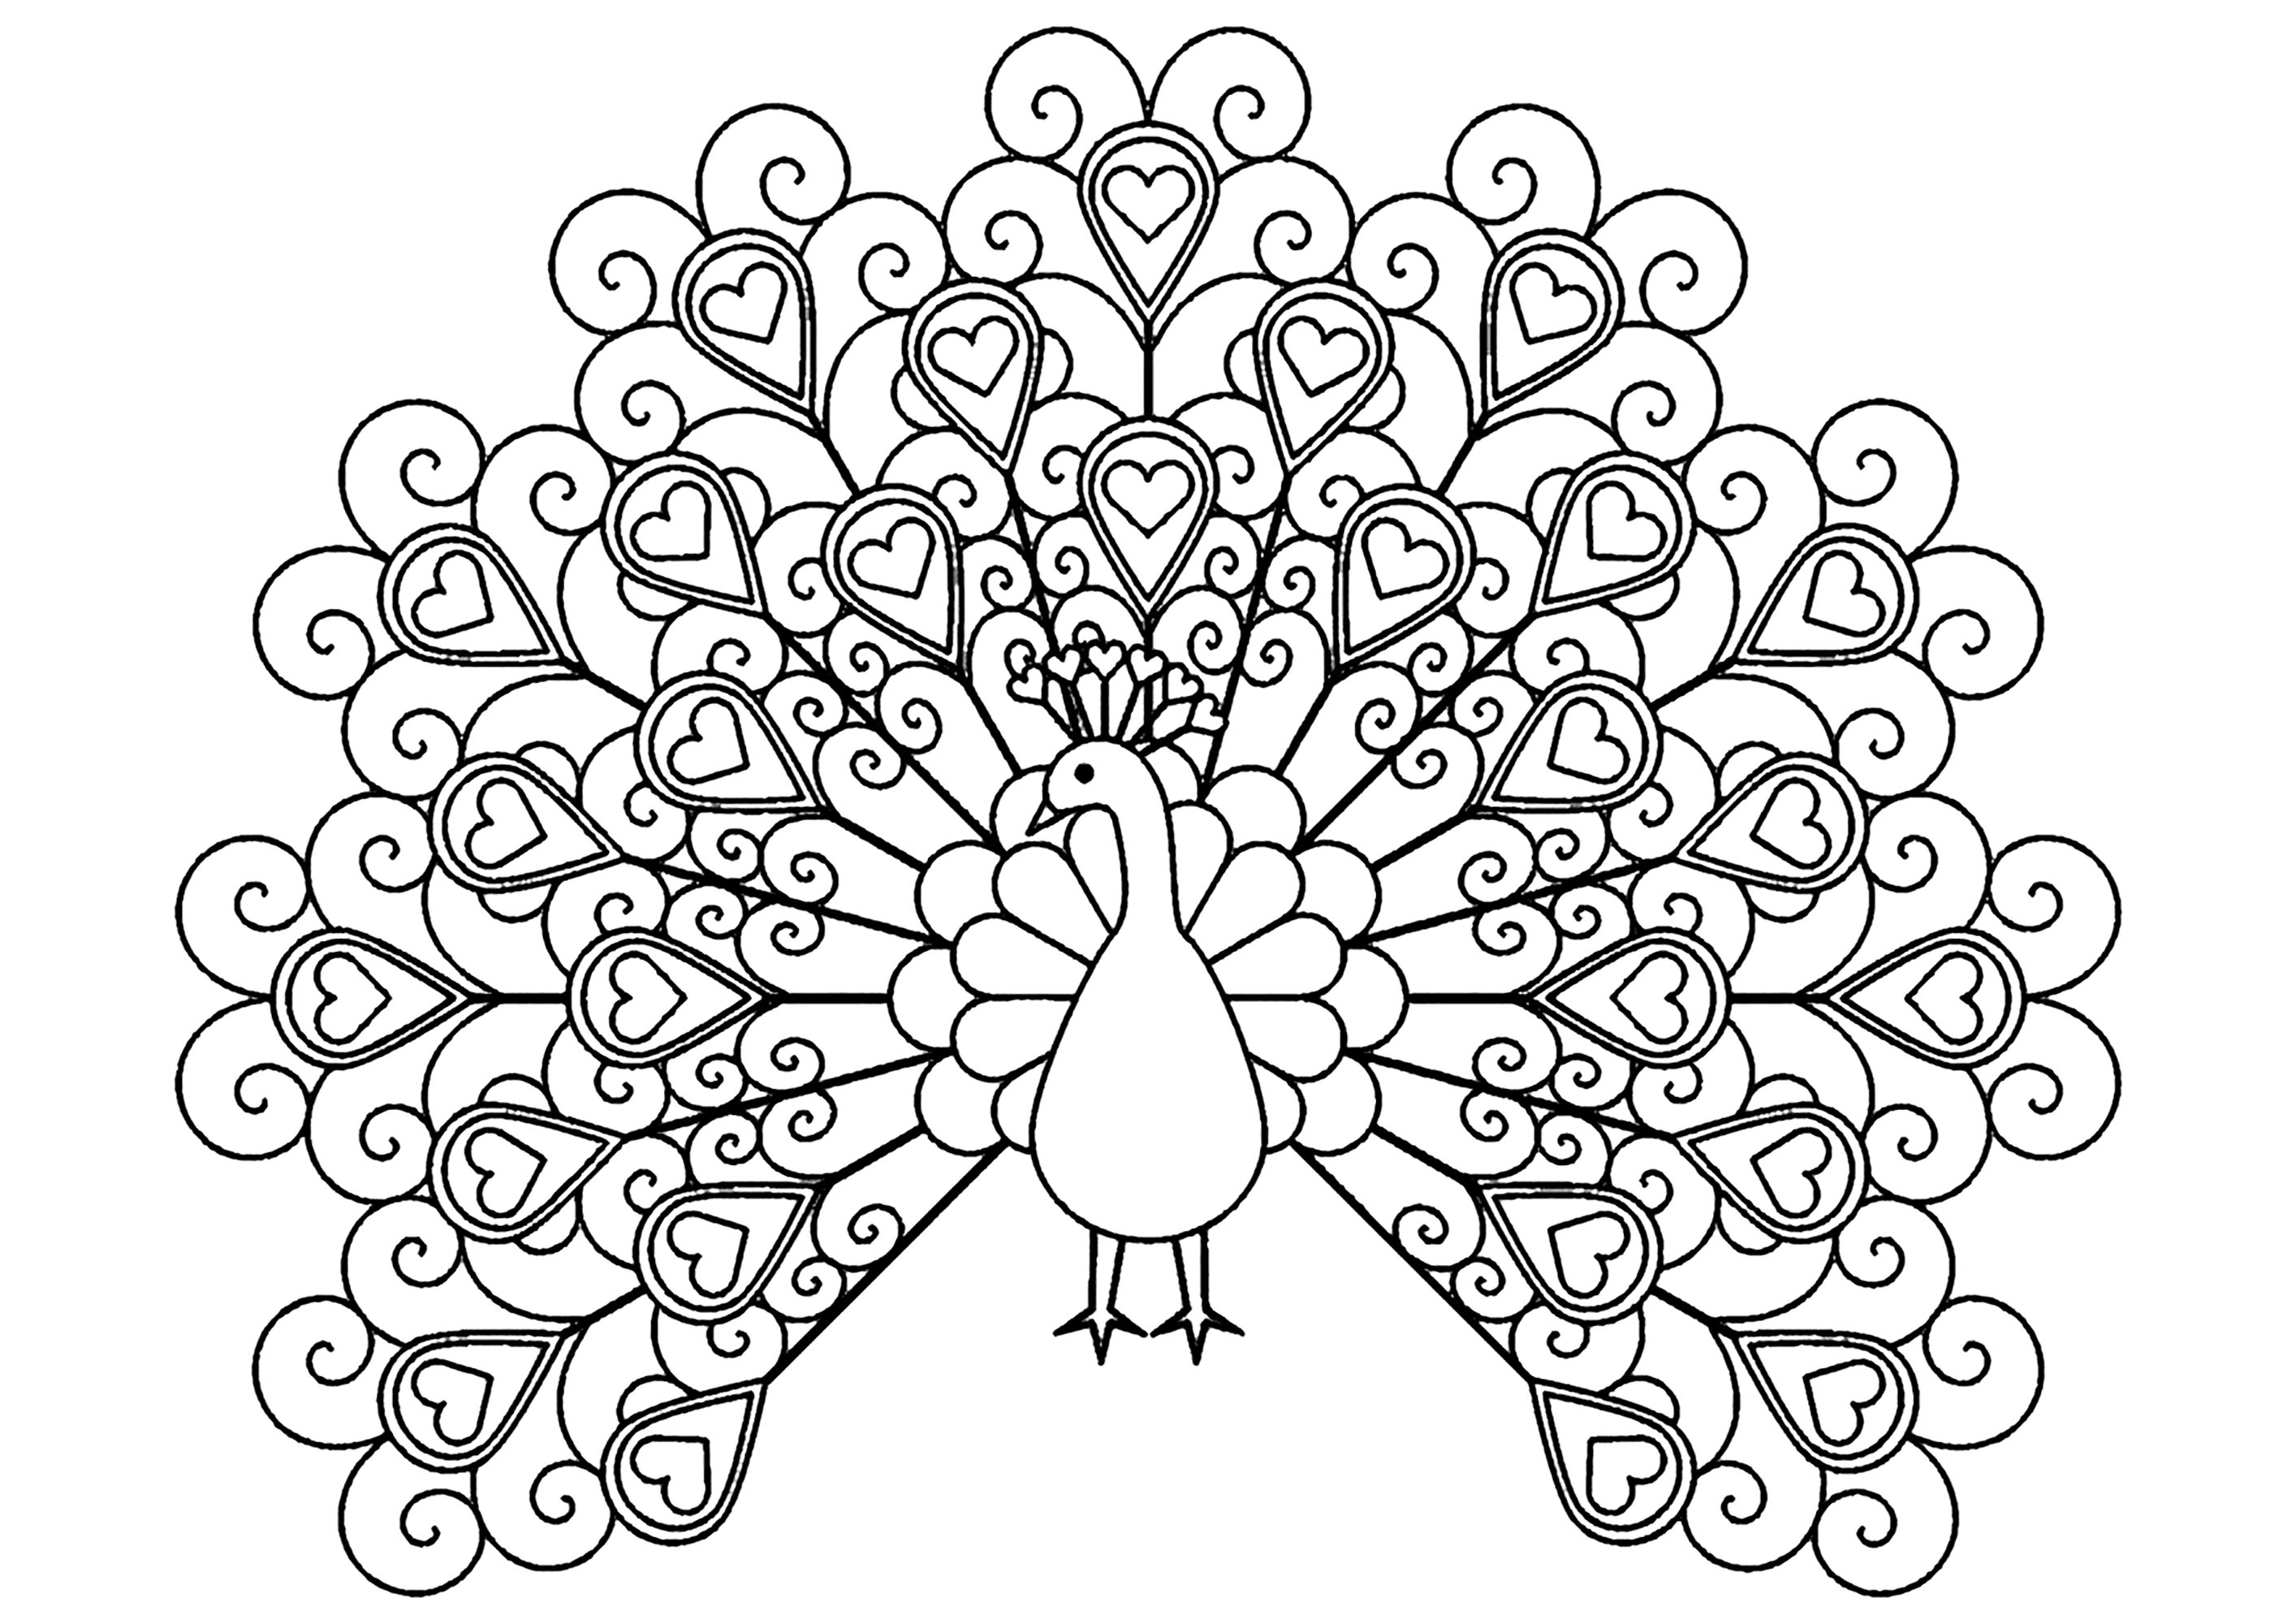 peacock coloring pages for adults peacock with hearts peacocks adult coloring pages coloring pages peacock adults for